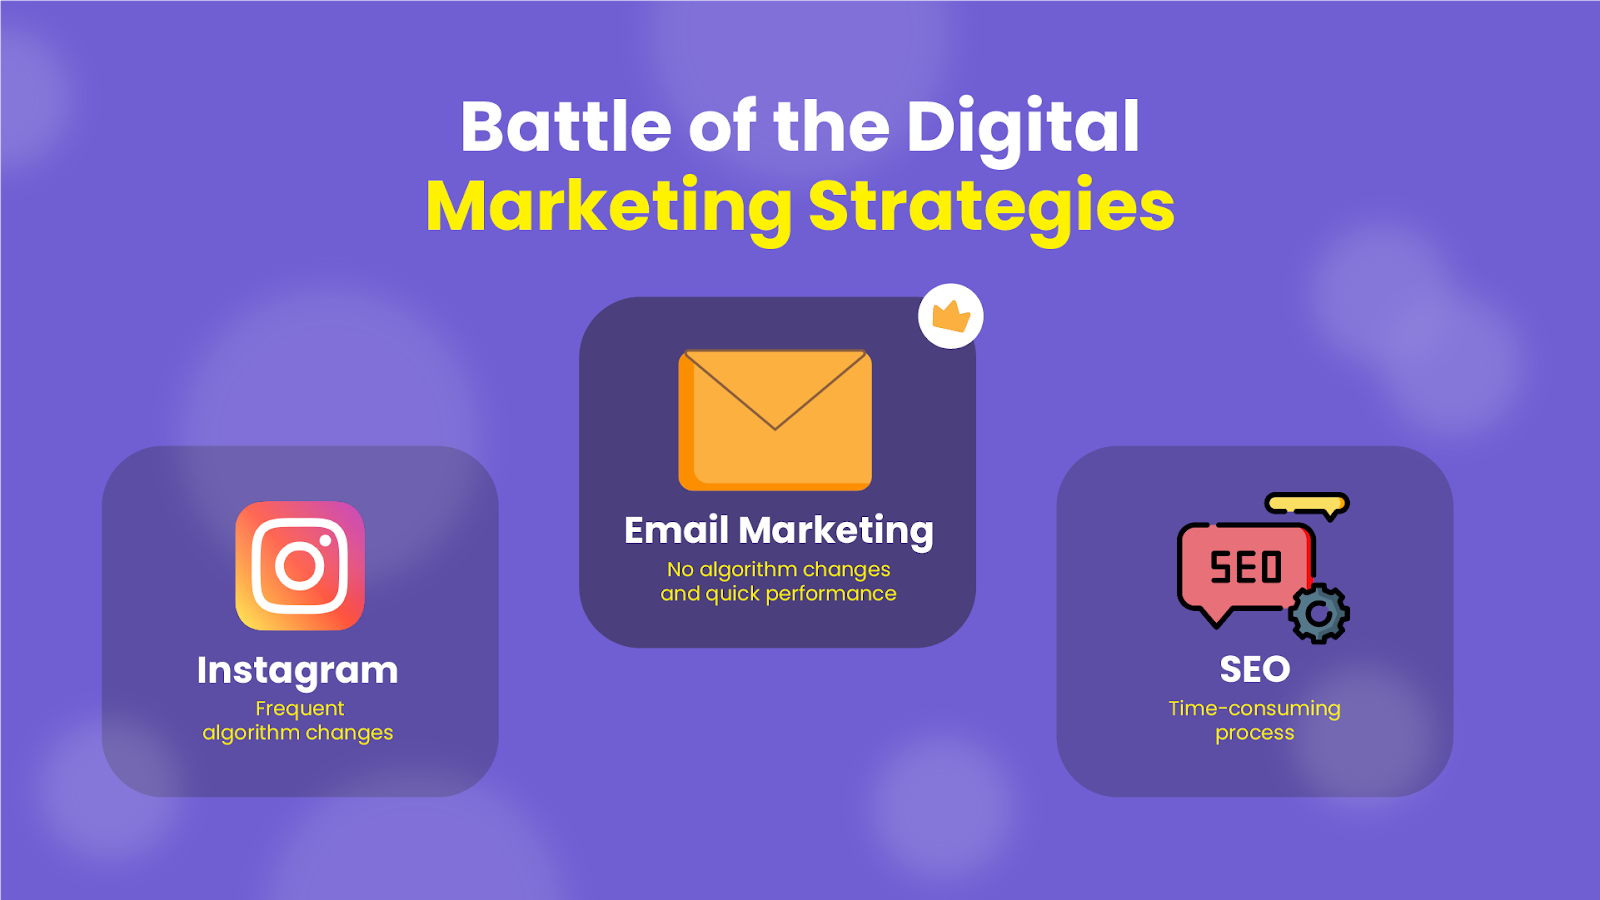 Which digital marketing strategy is most suitable for small businesses?